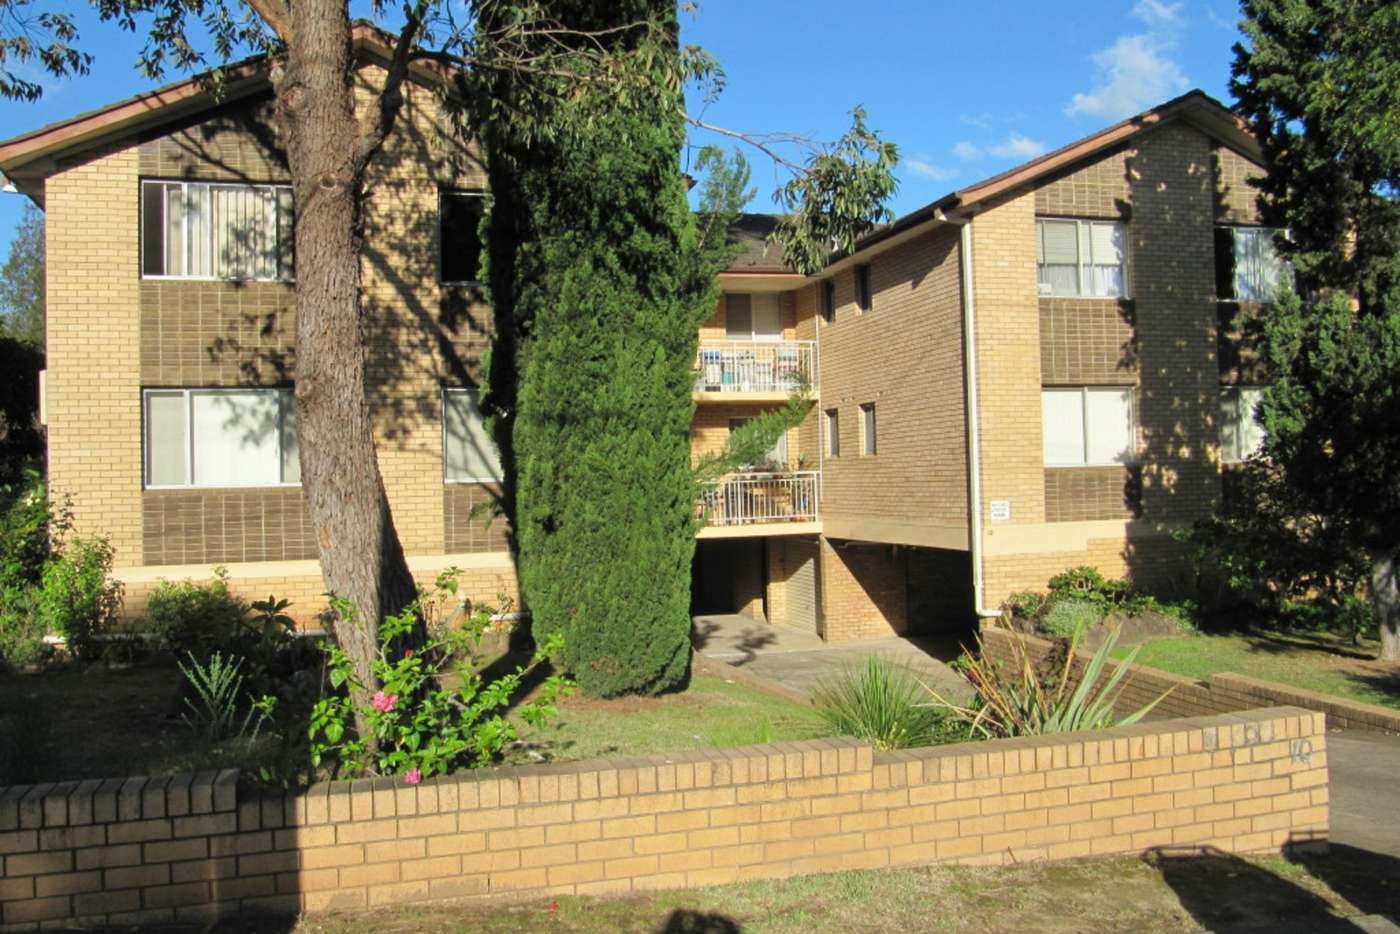 Main view of Homely unit listing, 3/10 Chetwynd Road, Merrylands NSW 2160